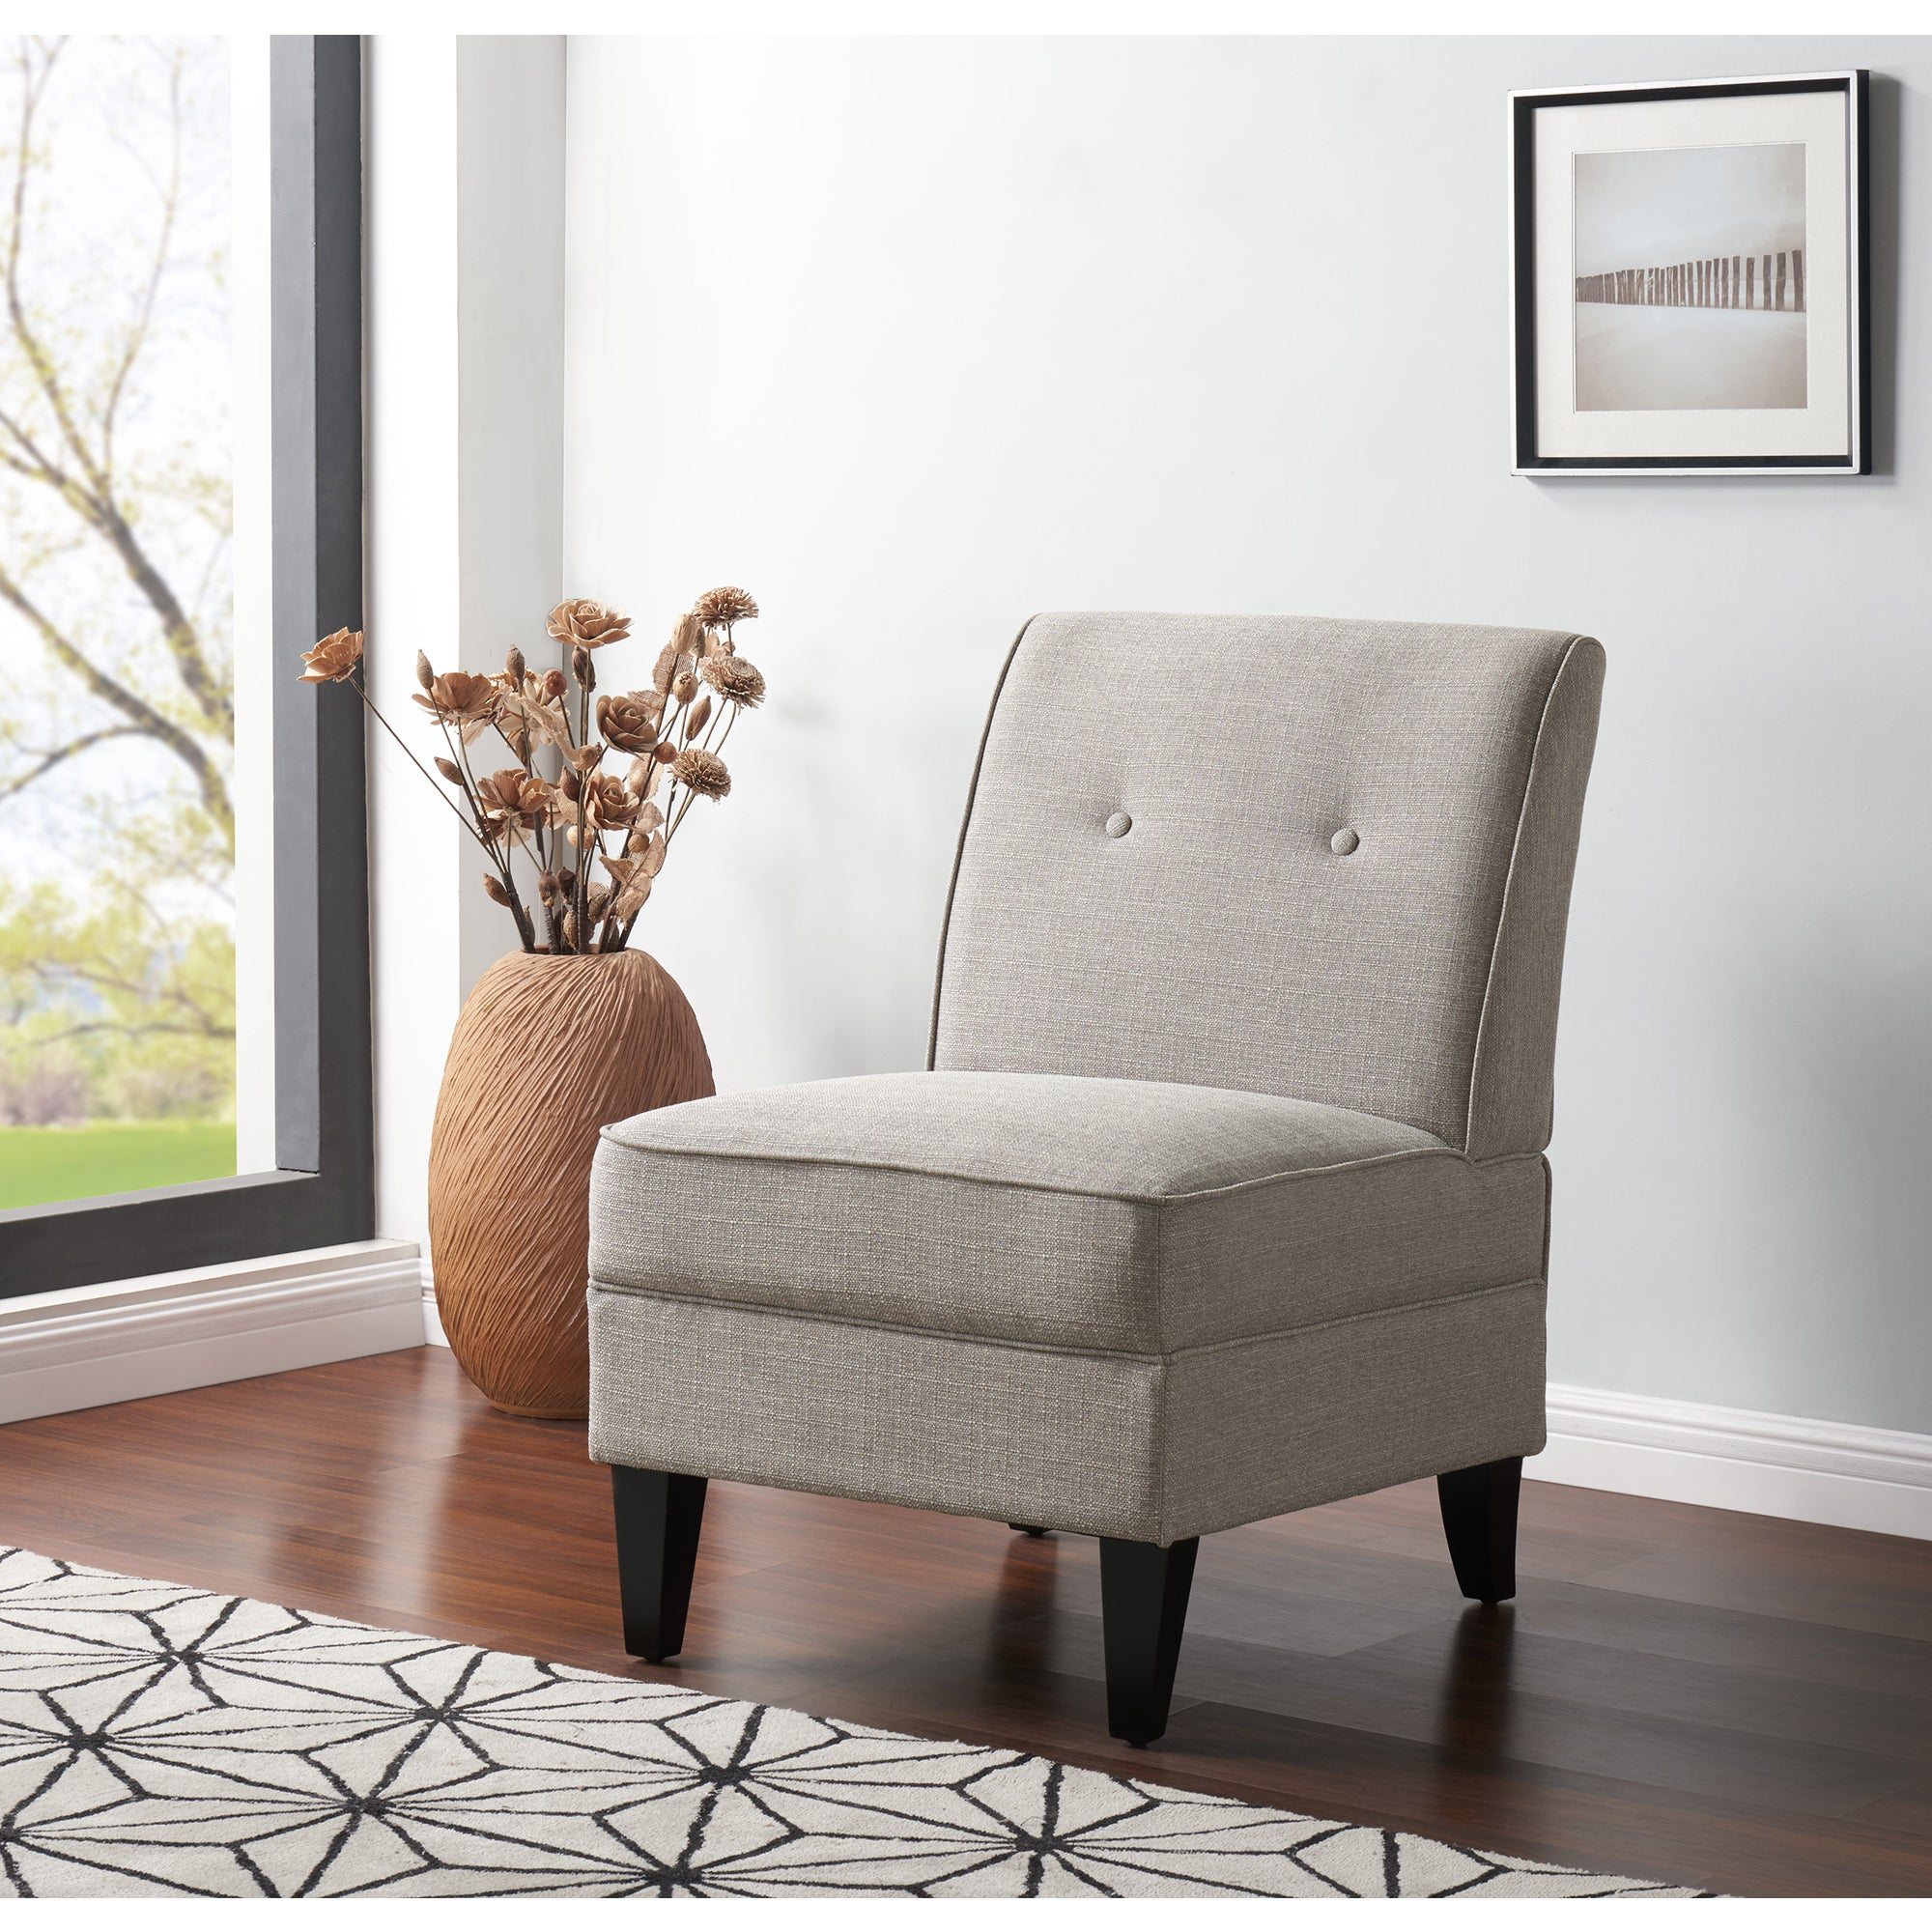 Gentil Handy Living Courtney Dove Grey Linen Armless Chair   Free Shipping Today    Overstock   23110832